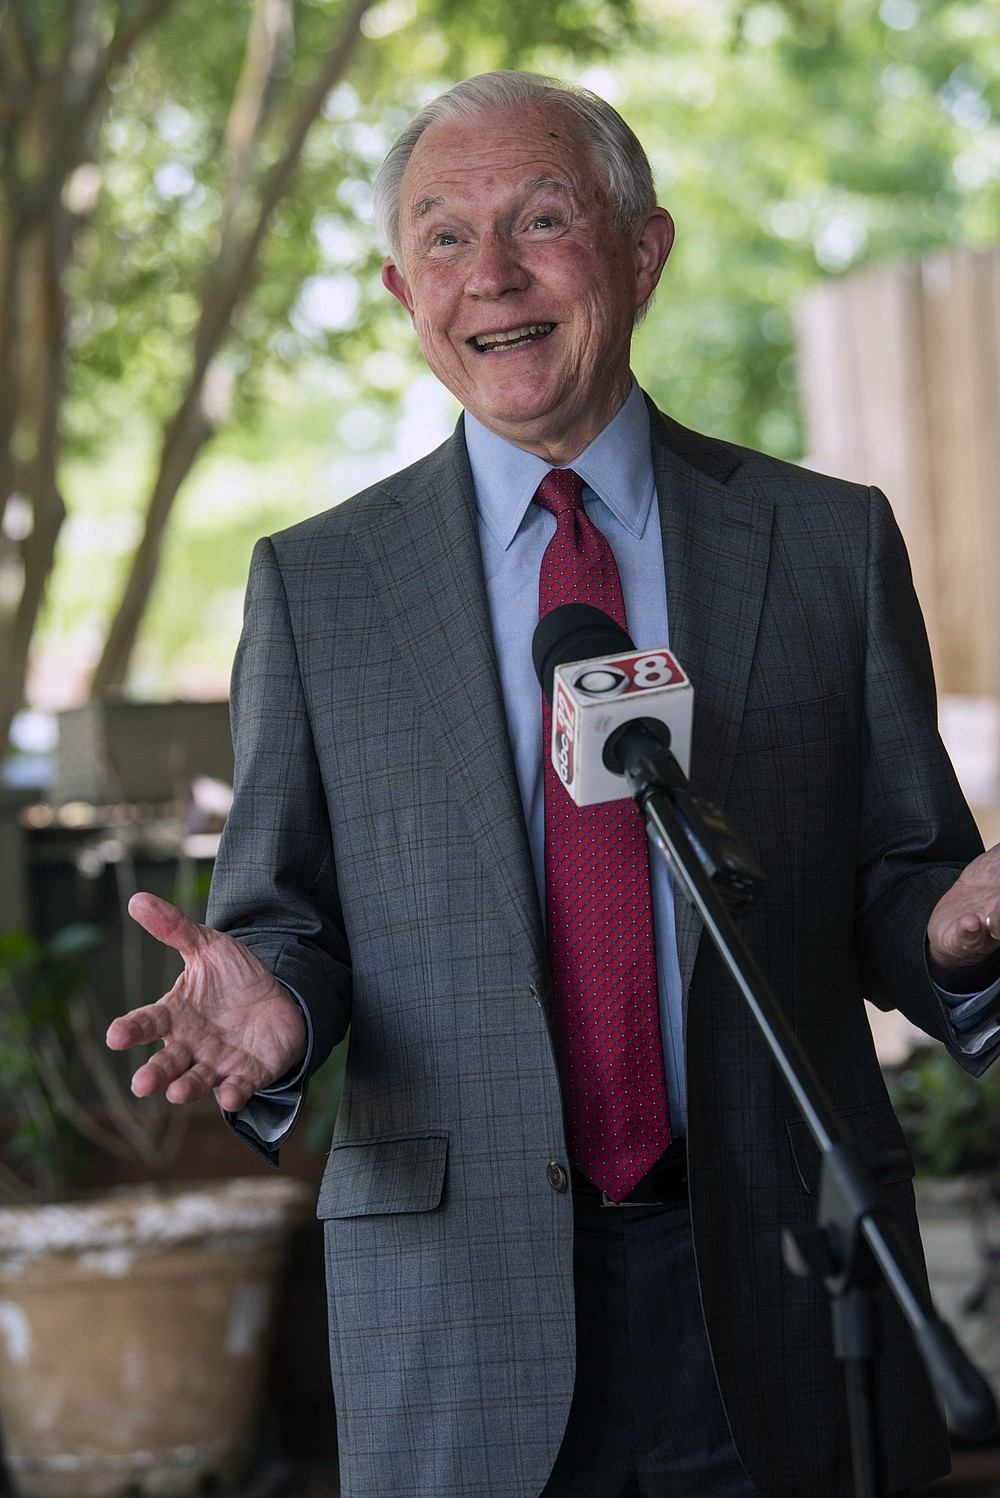 U.S. Senate candidate Jeff Sessions speaks during a press conference at Gail's Down the Street Cafe in Montgomery, Ala., on Friday, July 10, 2020. Seeking a political comeback, Jeff Sessions is trying to beat out former college football coach Tommy Tuberville in Tuesday's Republican primary runoff. But to reclaim the Alabama Senate seat he held for decades, Sessions also has to go through President Donald Trump. (Jake Crandall/The Montgomery Advertiser via AP)